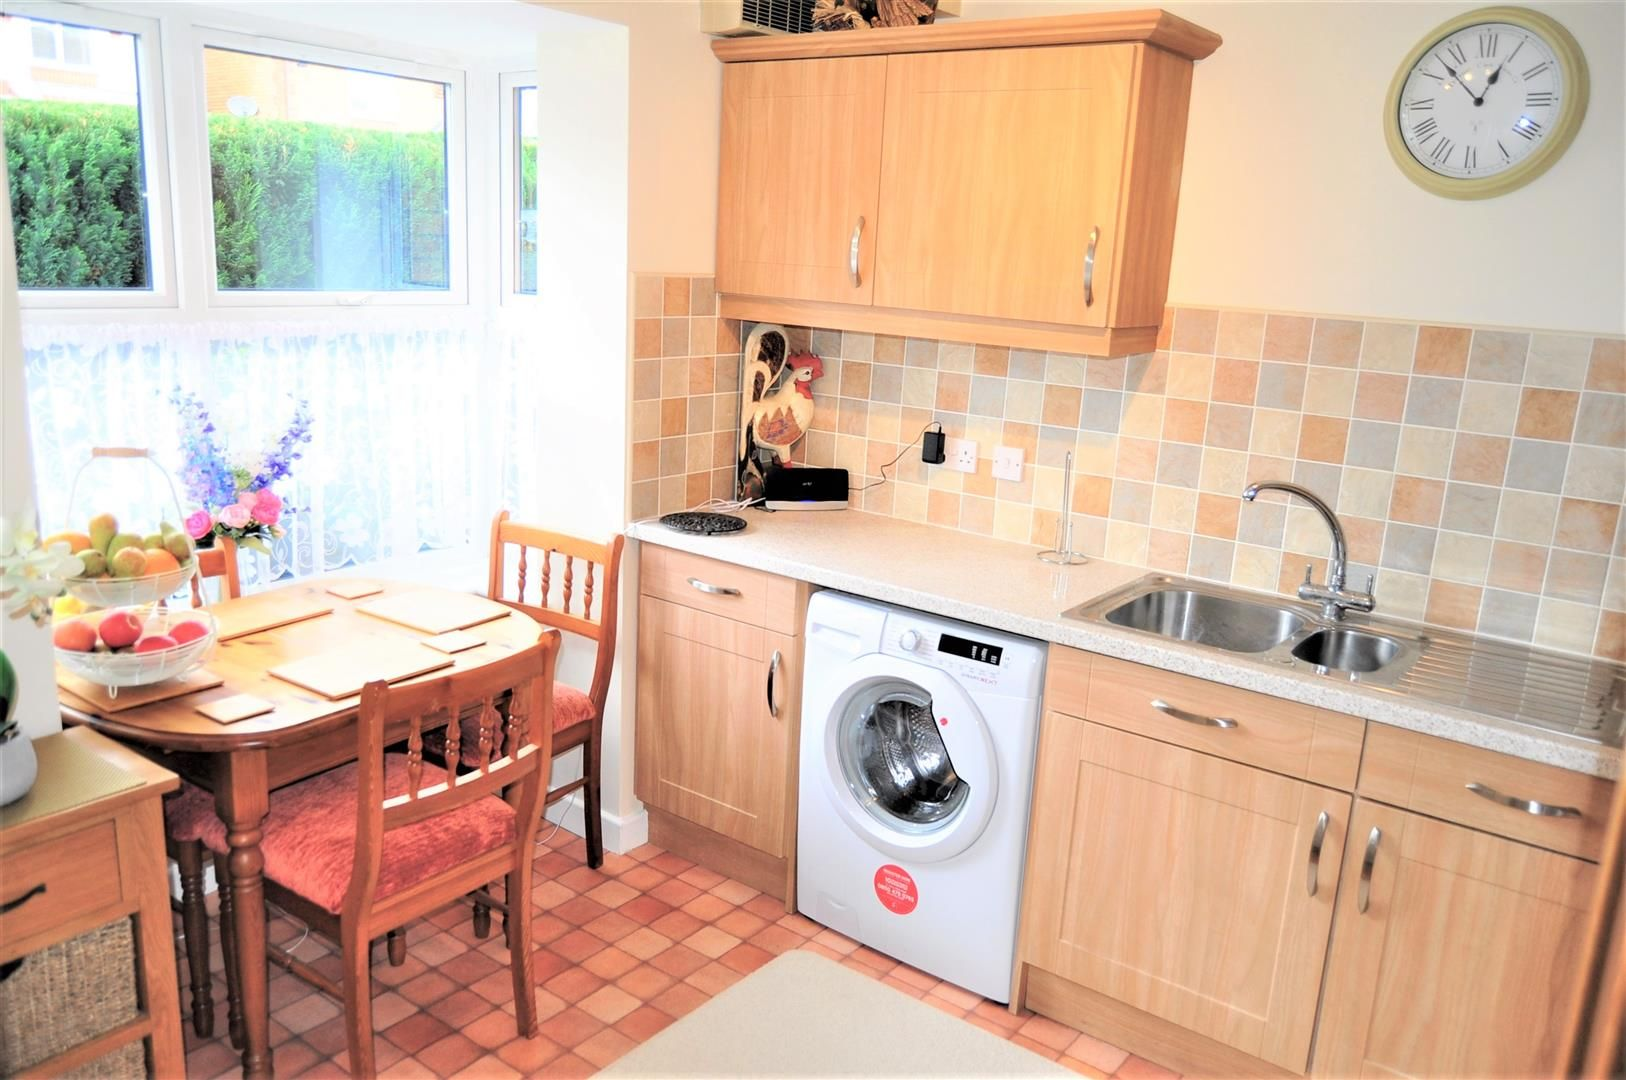 2 bed end-of-terrace for sale  - Property Image 2